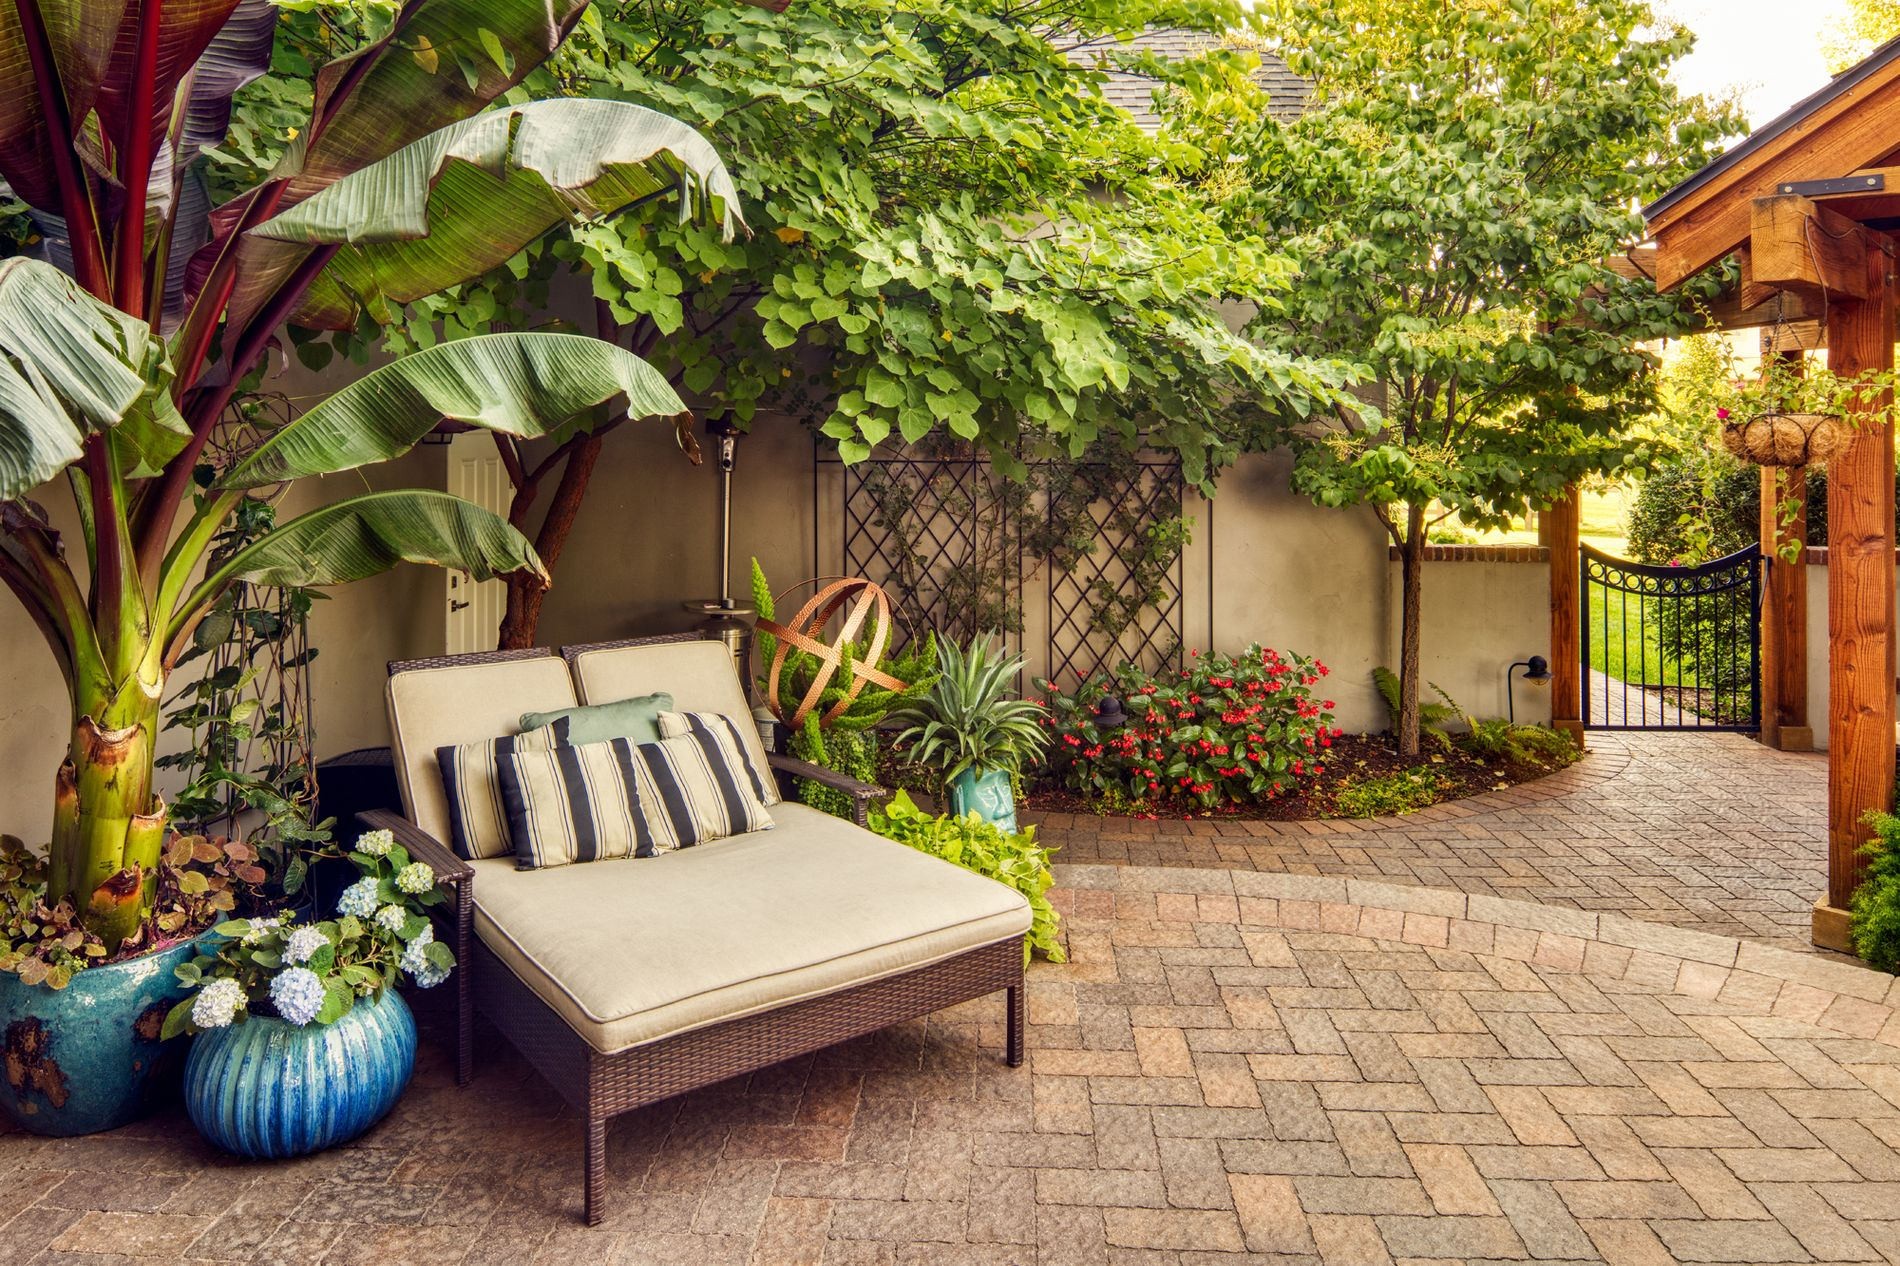 Paver patio and lounge chair in backyard courtyard